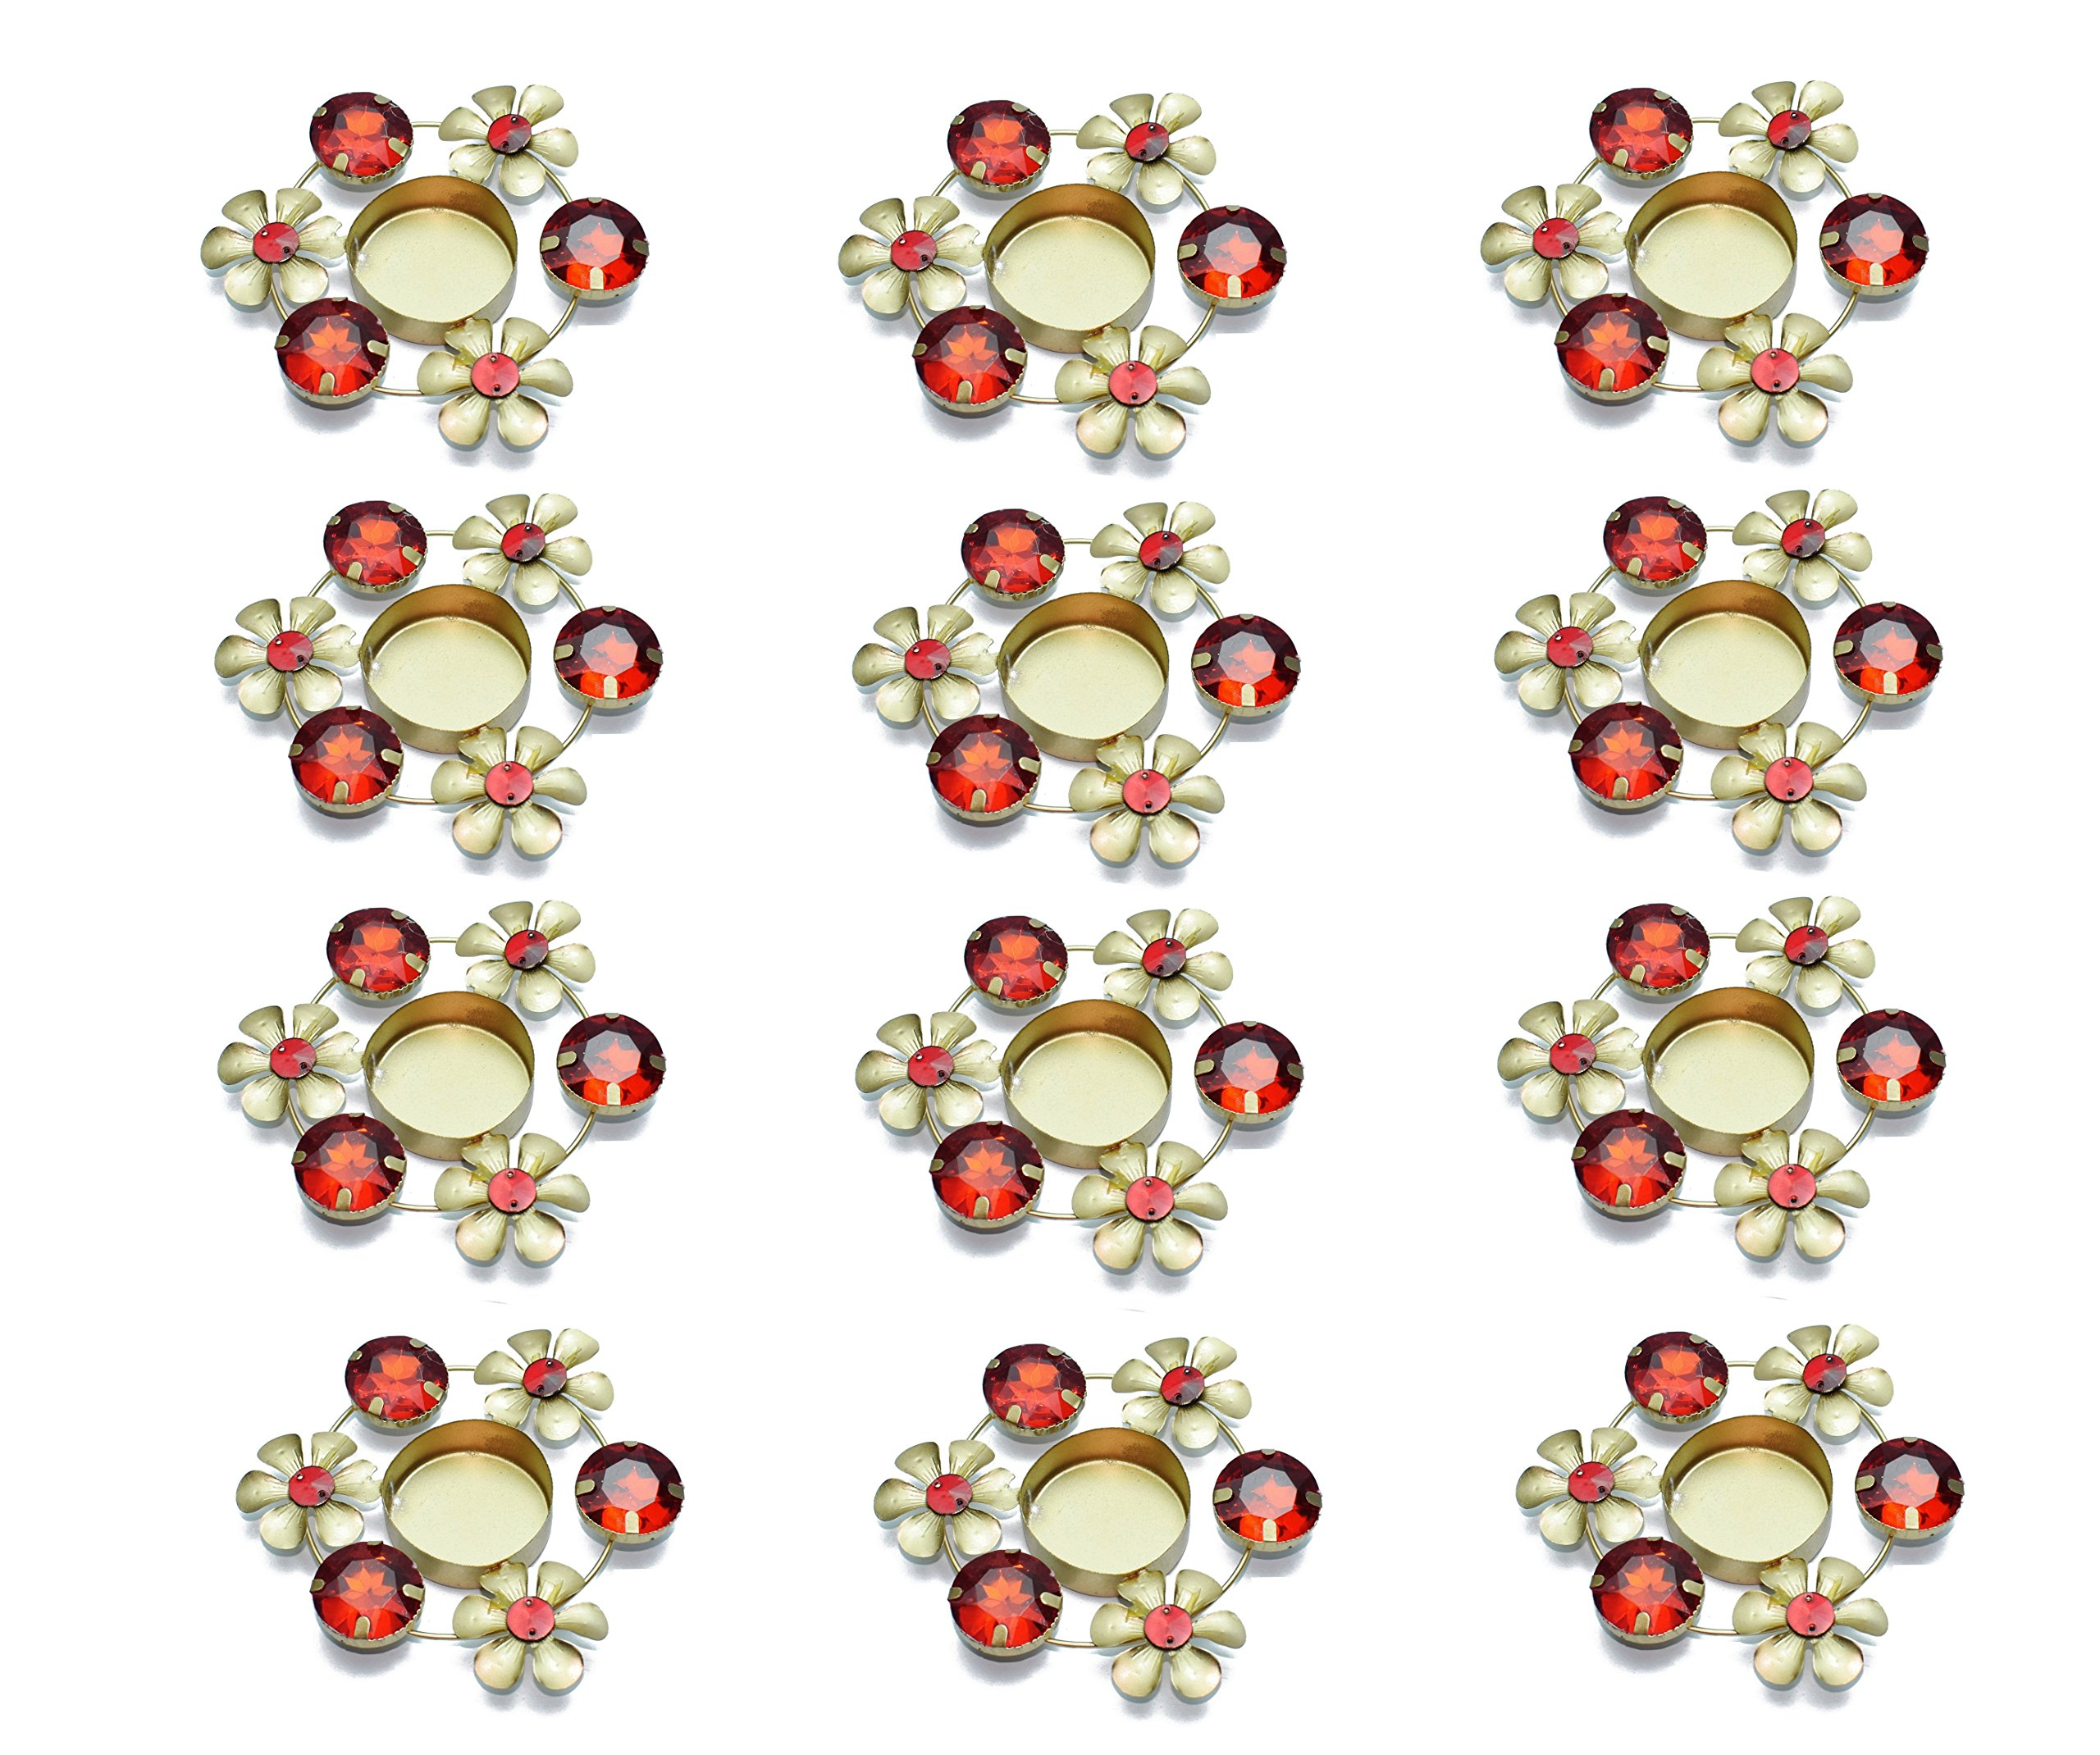 Set of 12 pc Christmas Gift/Decoration Beautiful Christmas Tea Light Holder with Red stones in Random Foil Paint. Tea Light Holder/Christmas Decoration